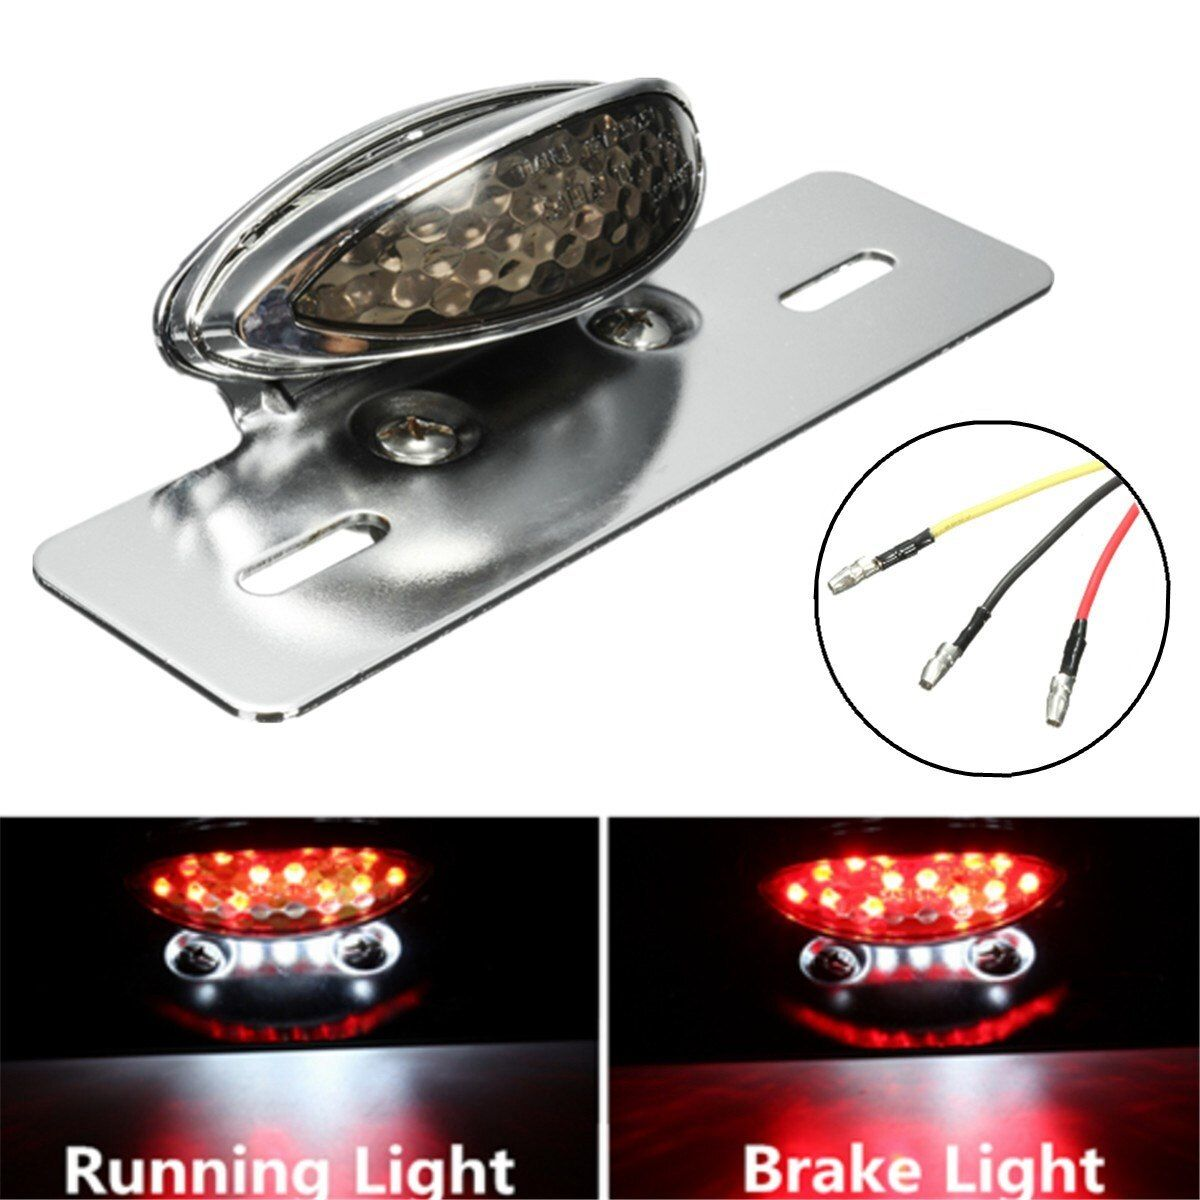 Universal Motorcycle LED Tail Stop Brake Light License Plate Lamp For Harley Bobber Chopper Cafe Racer For Yamaha